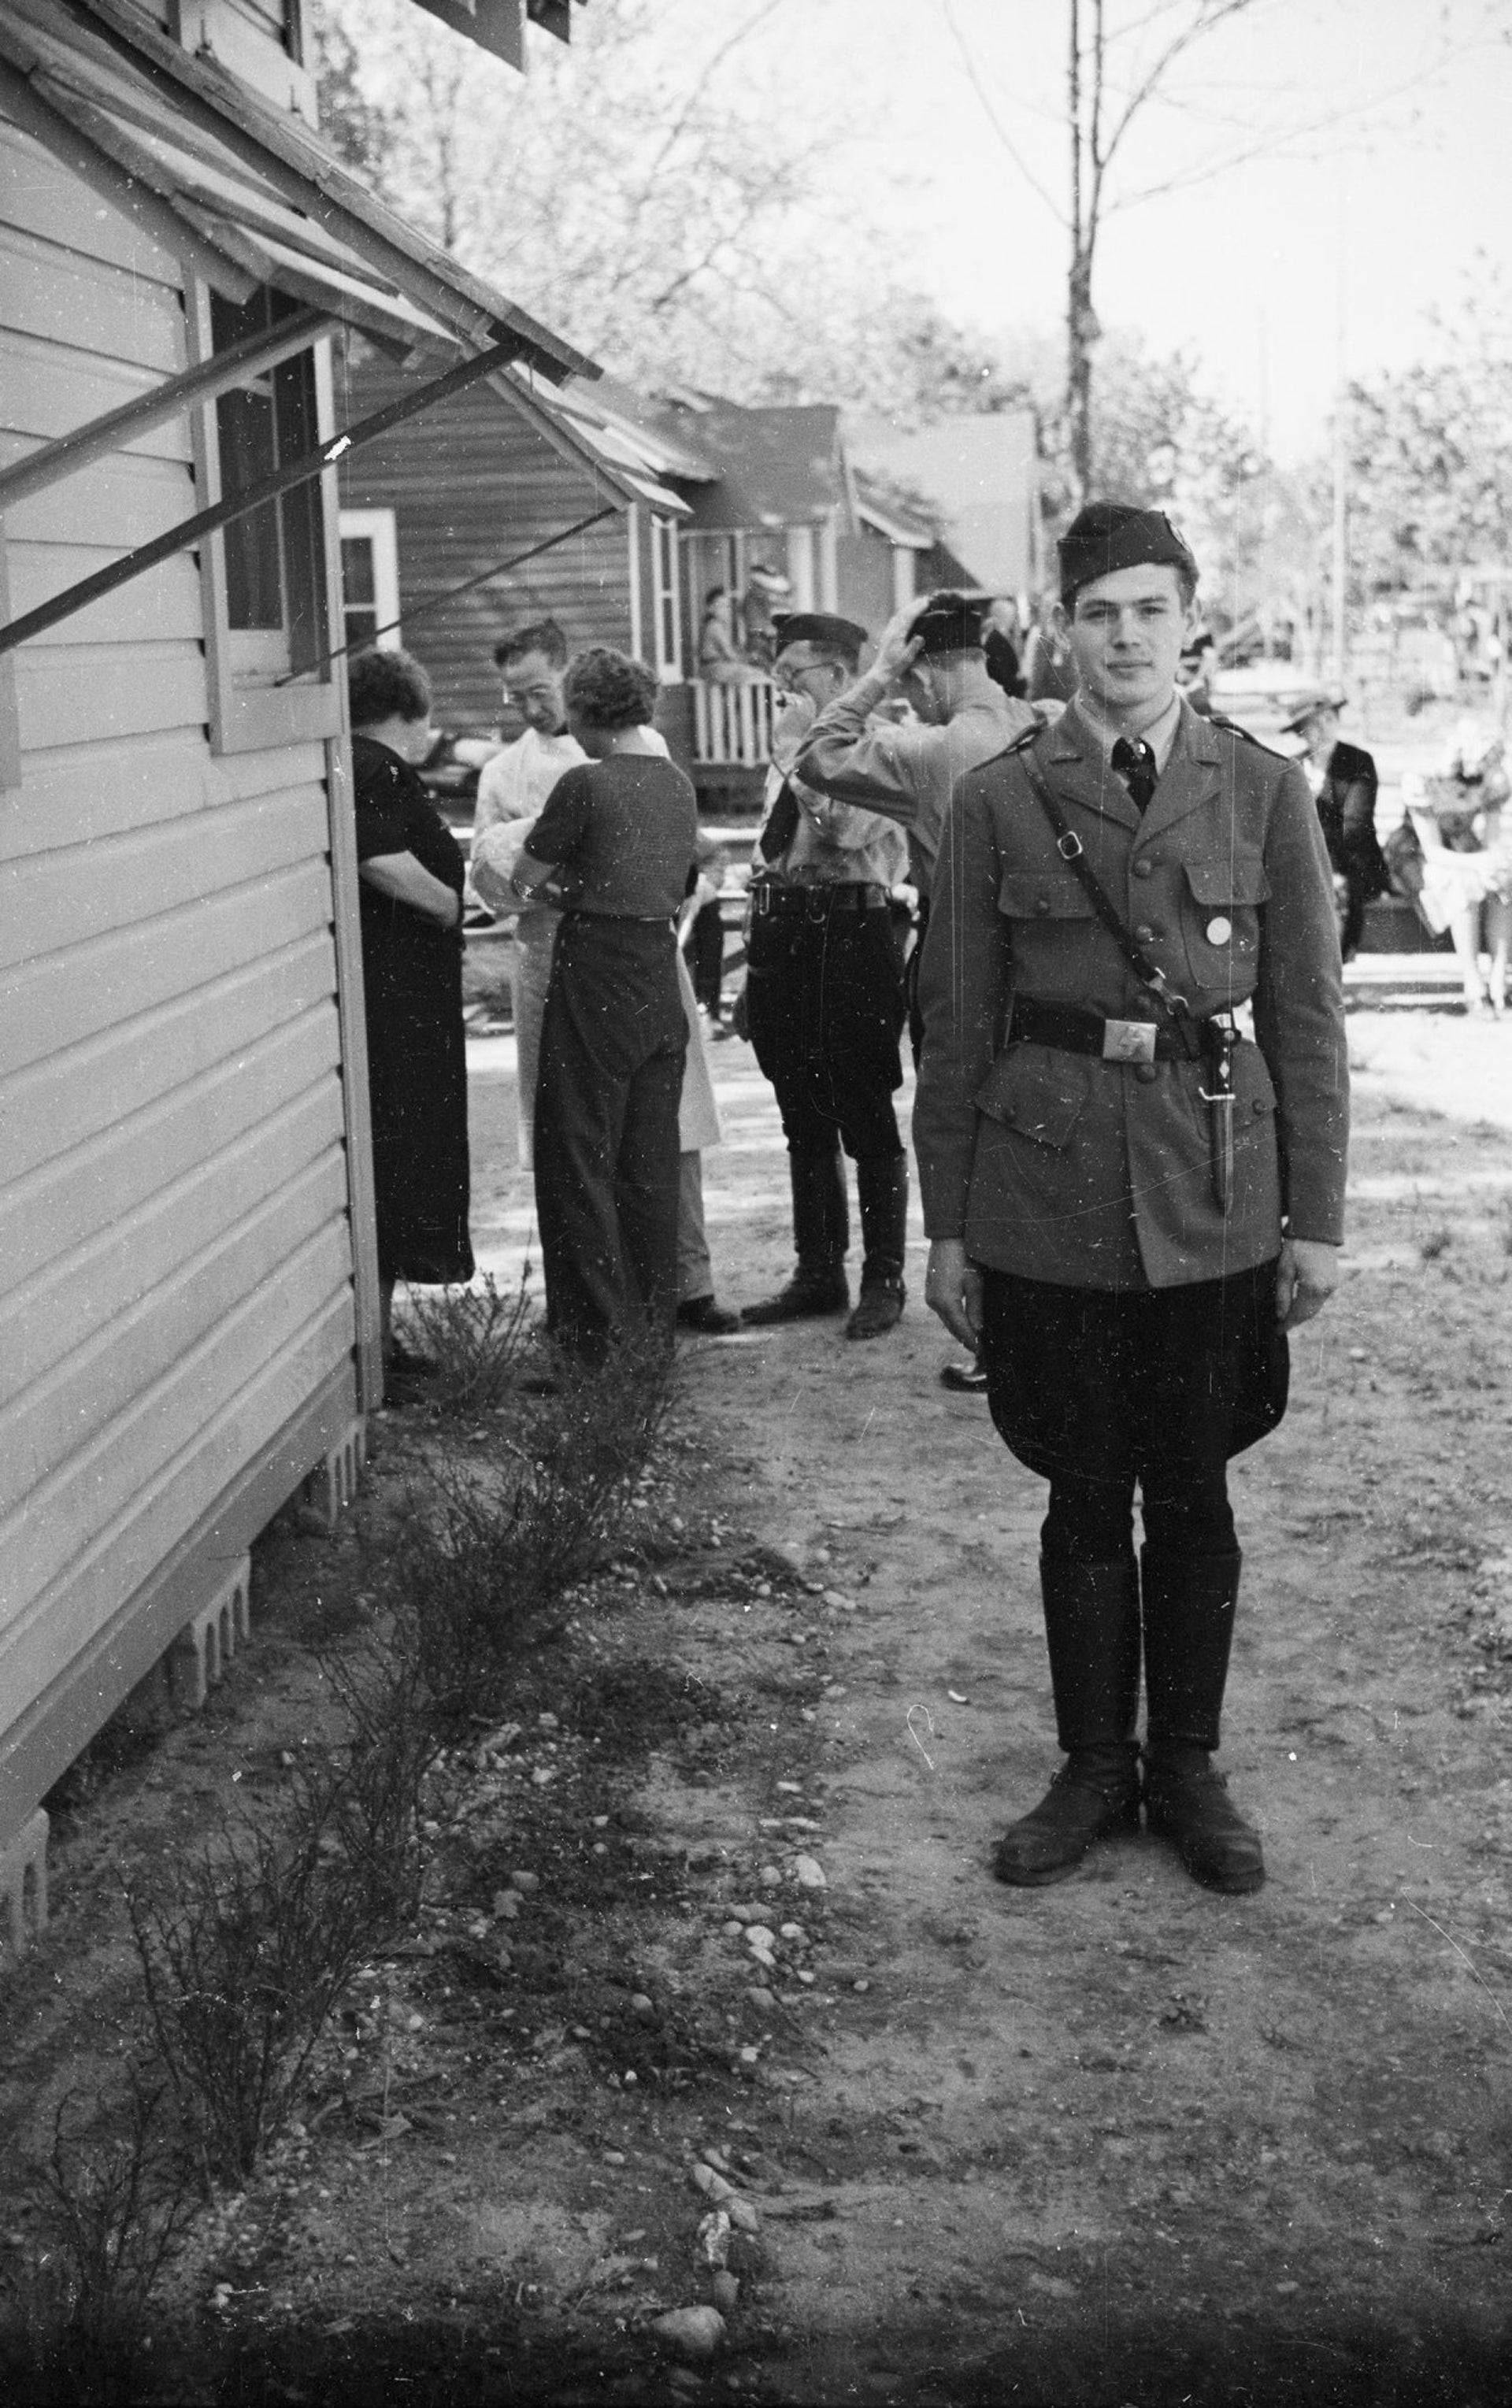 In this May 22,1938 photo provided by the New York City Municipal Archives, a young member of the German American Bund poses for a photo with other members gathered behind him, at Camp Siegfried in Yaphank, N.Y.